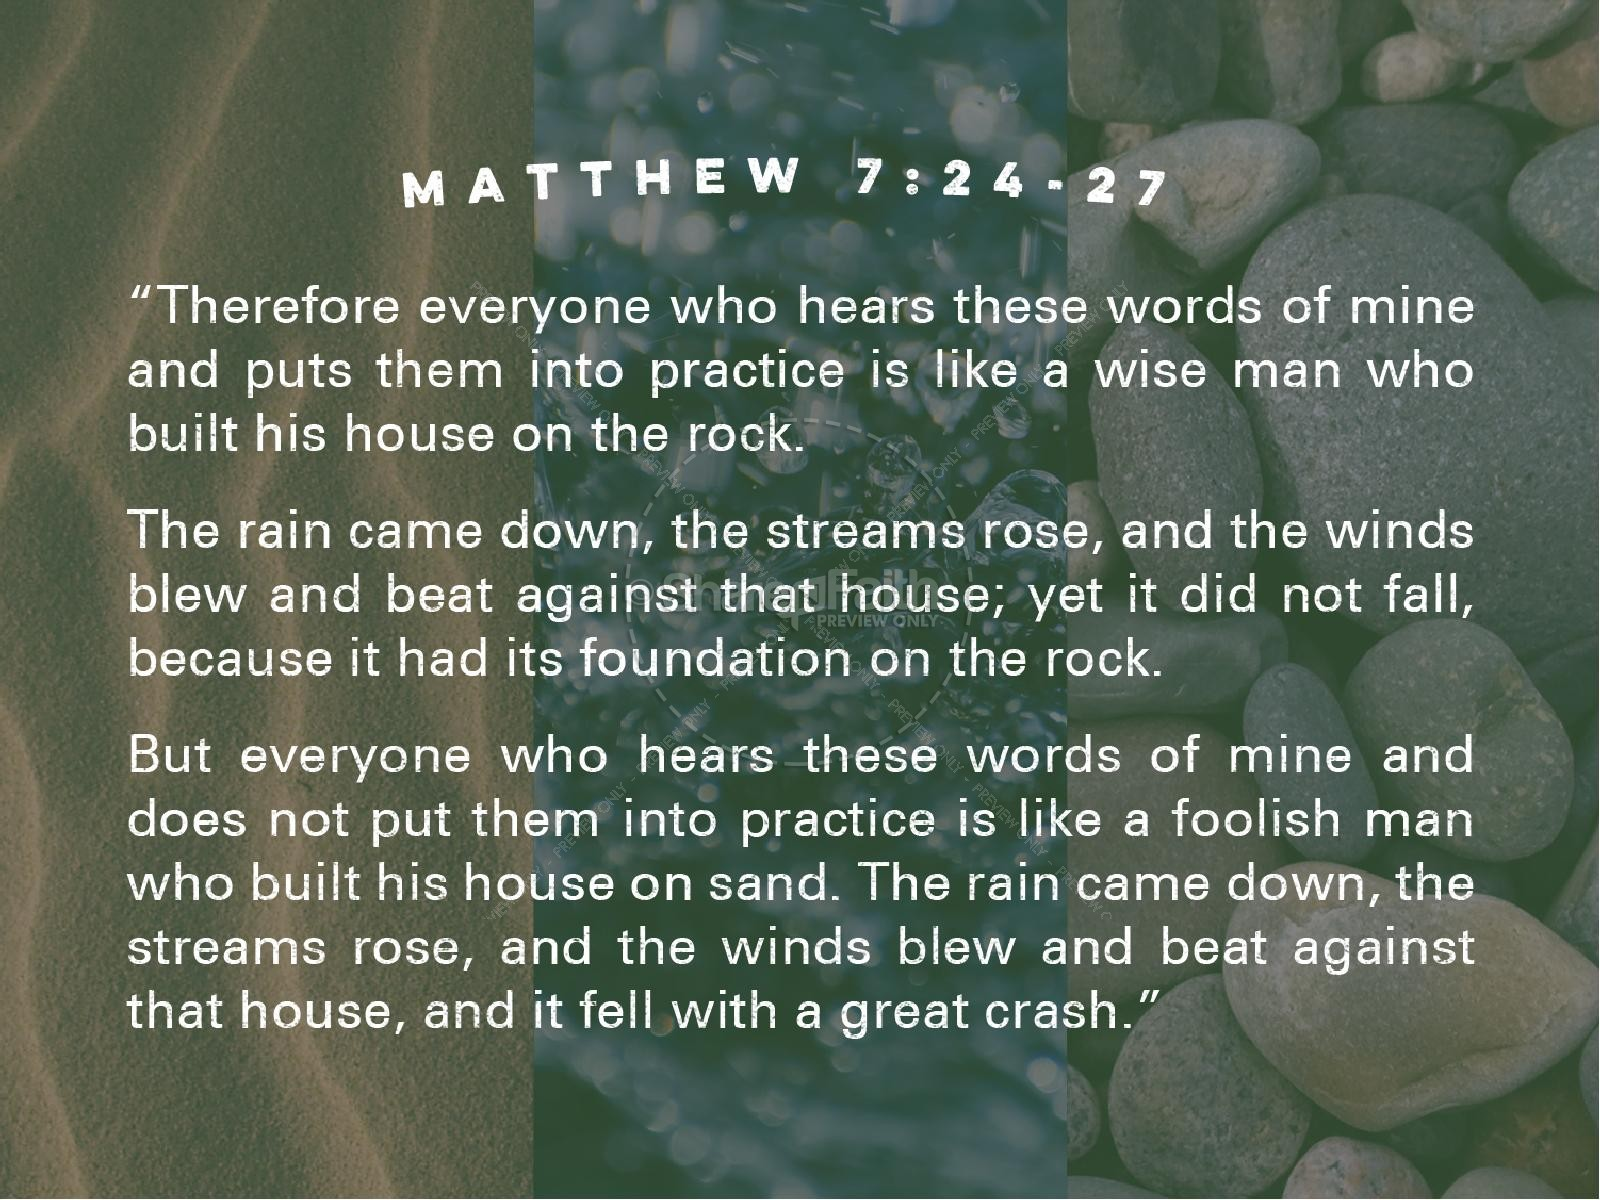 Wise man built his house upon the rock sermon -  The Parable Of The Wise And Foolish Builders Christian Powerpoint